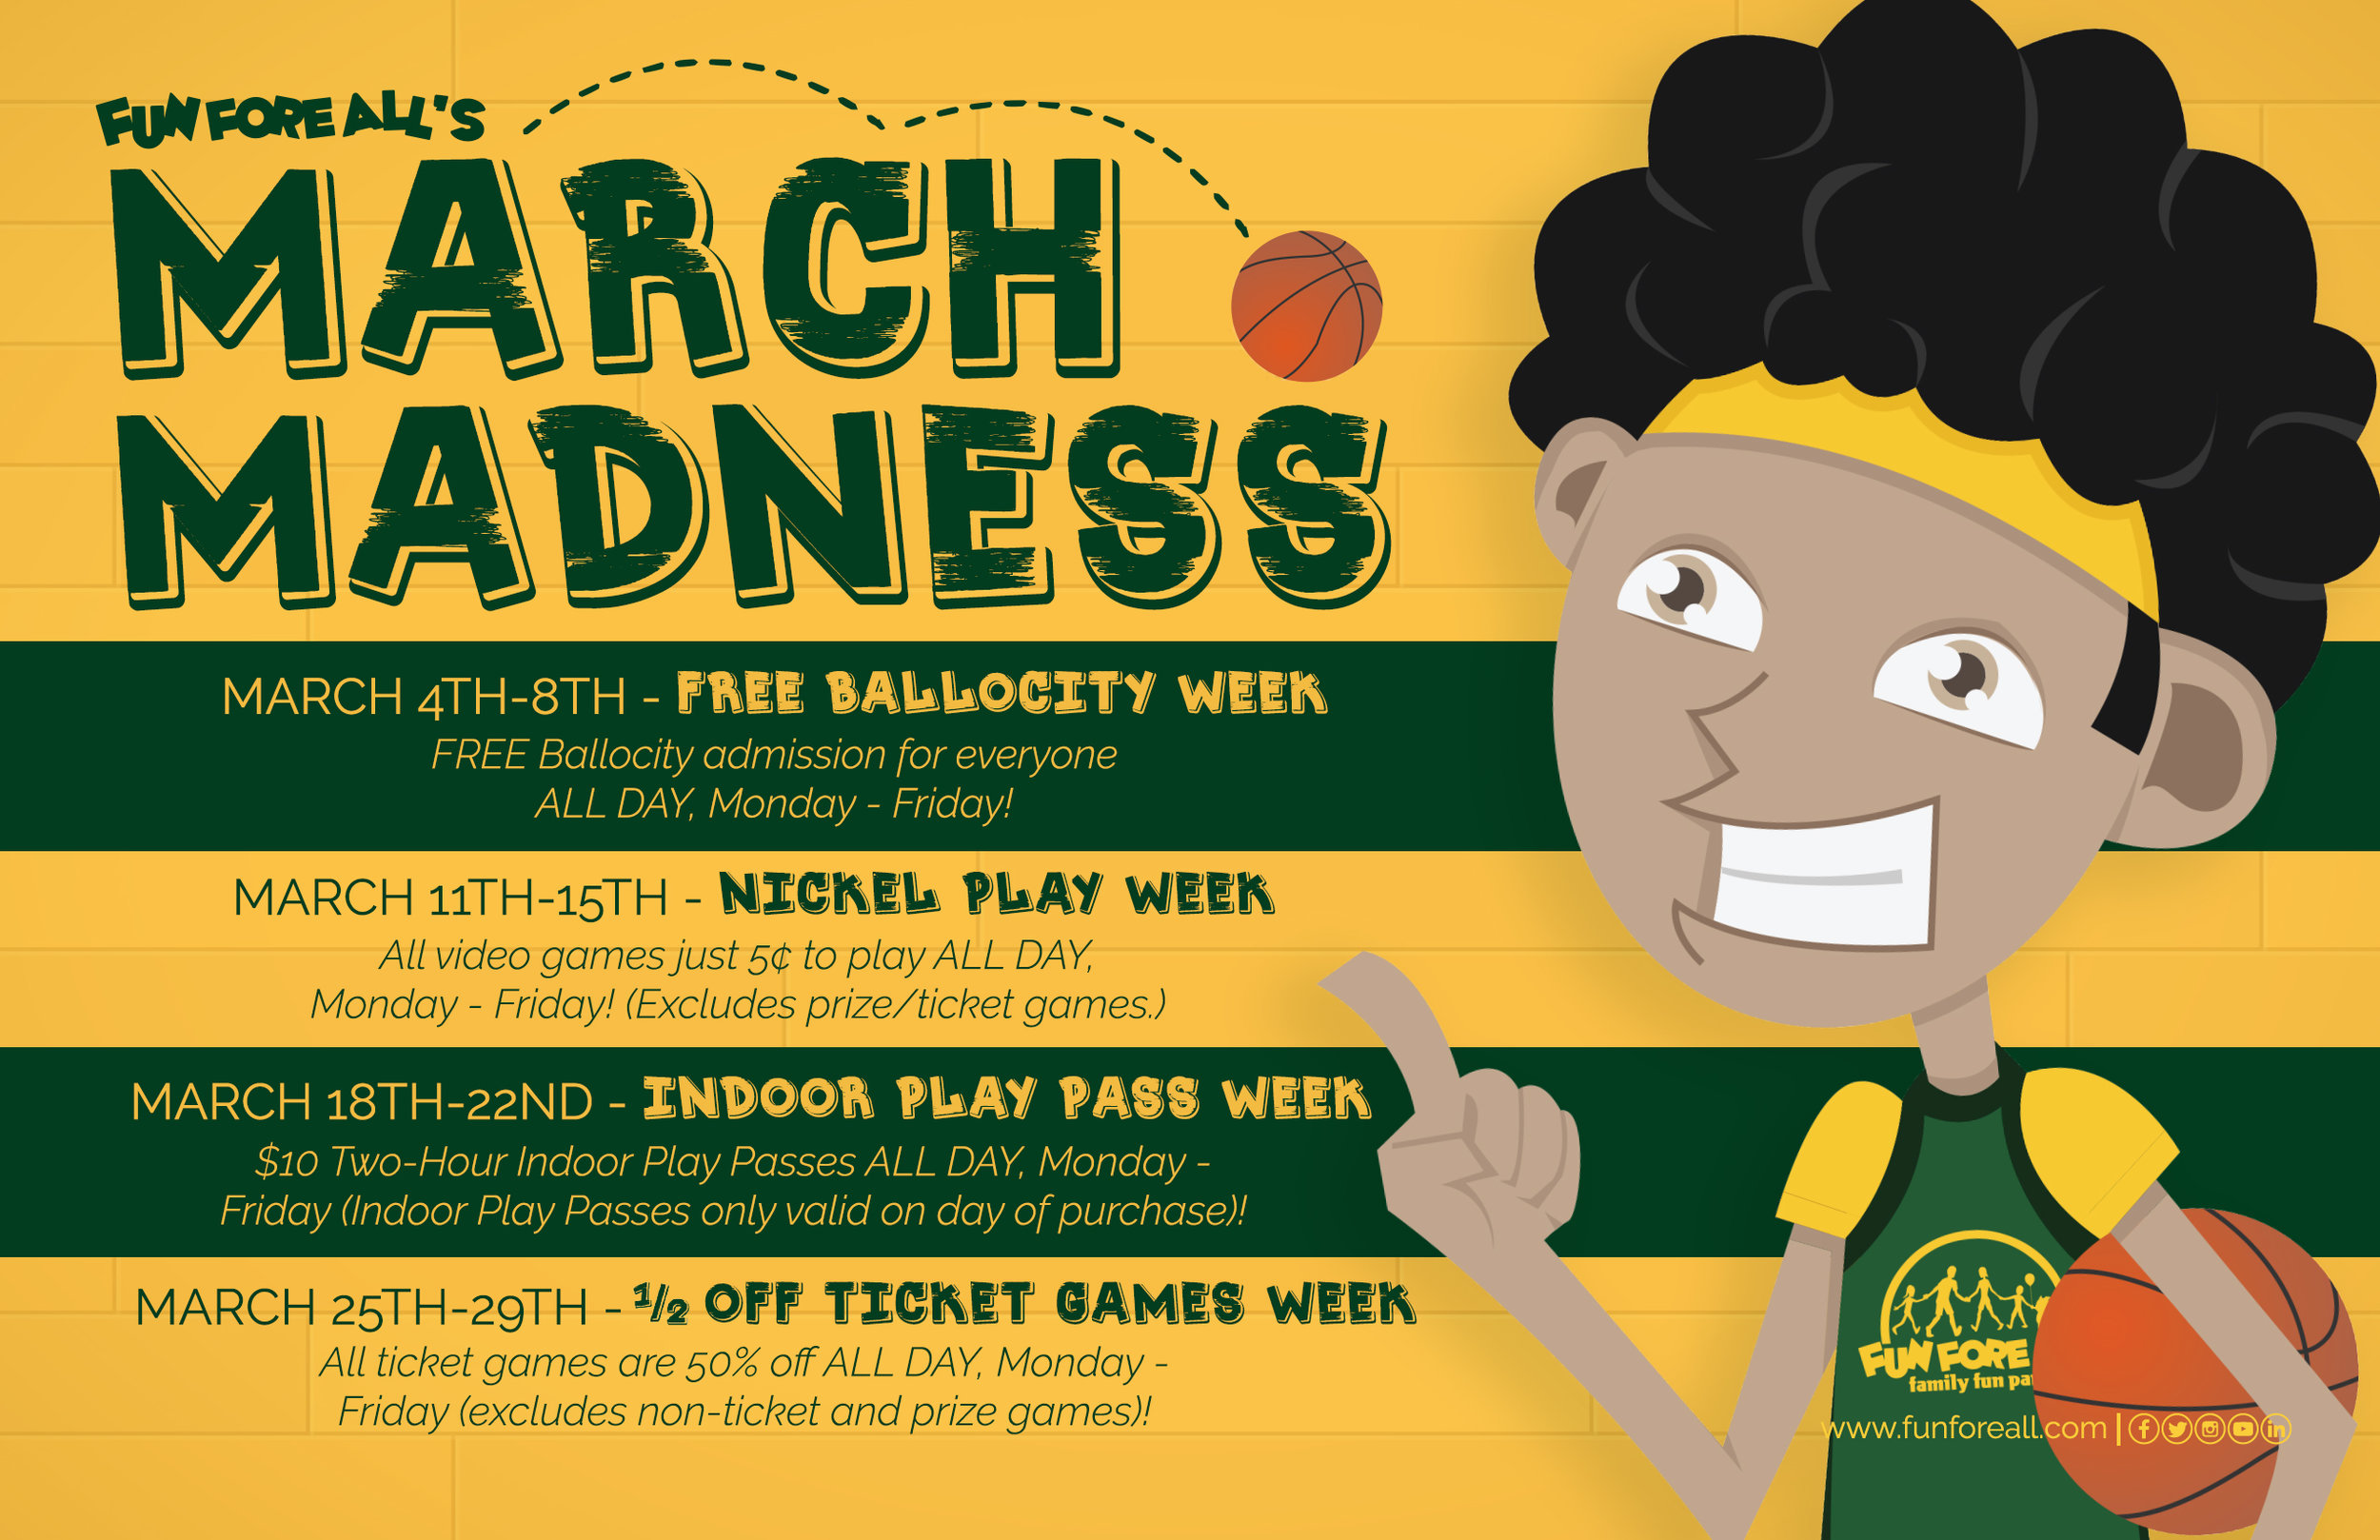 MARCH MADNESS PROMOTIONAL FLYER (2019)